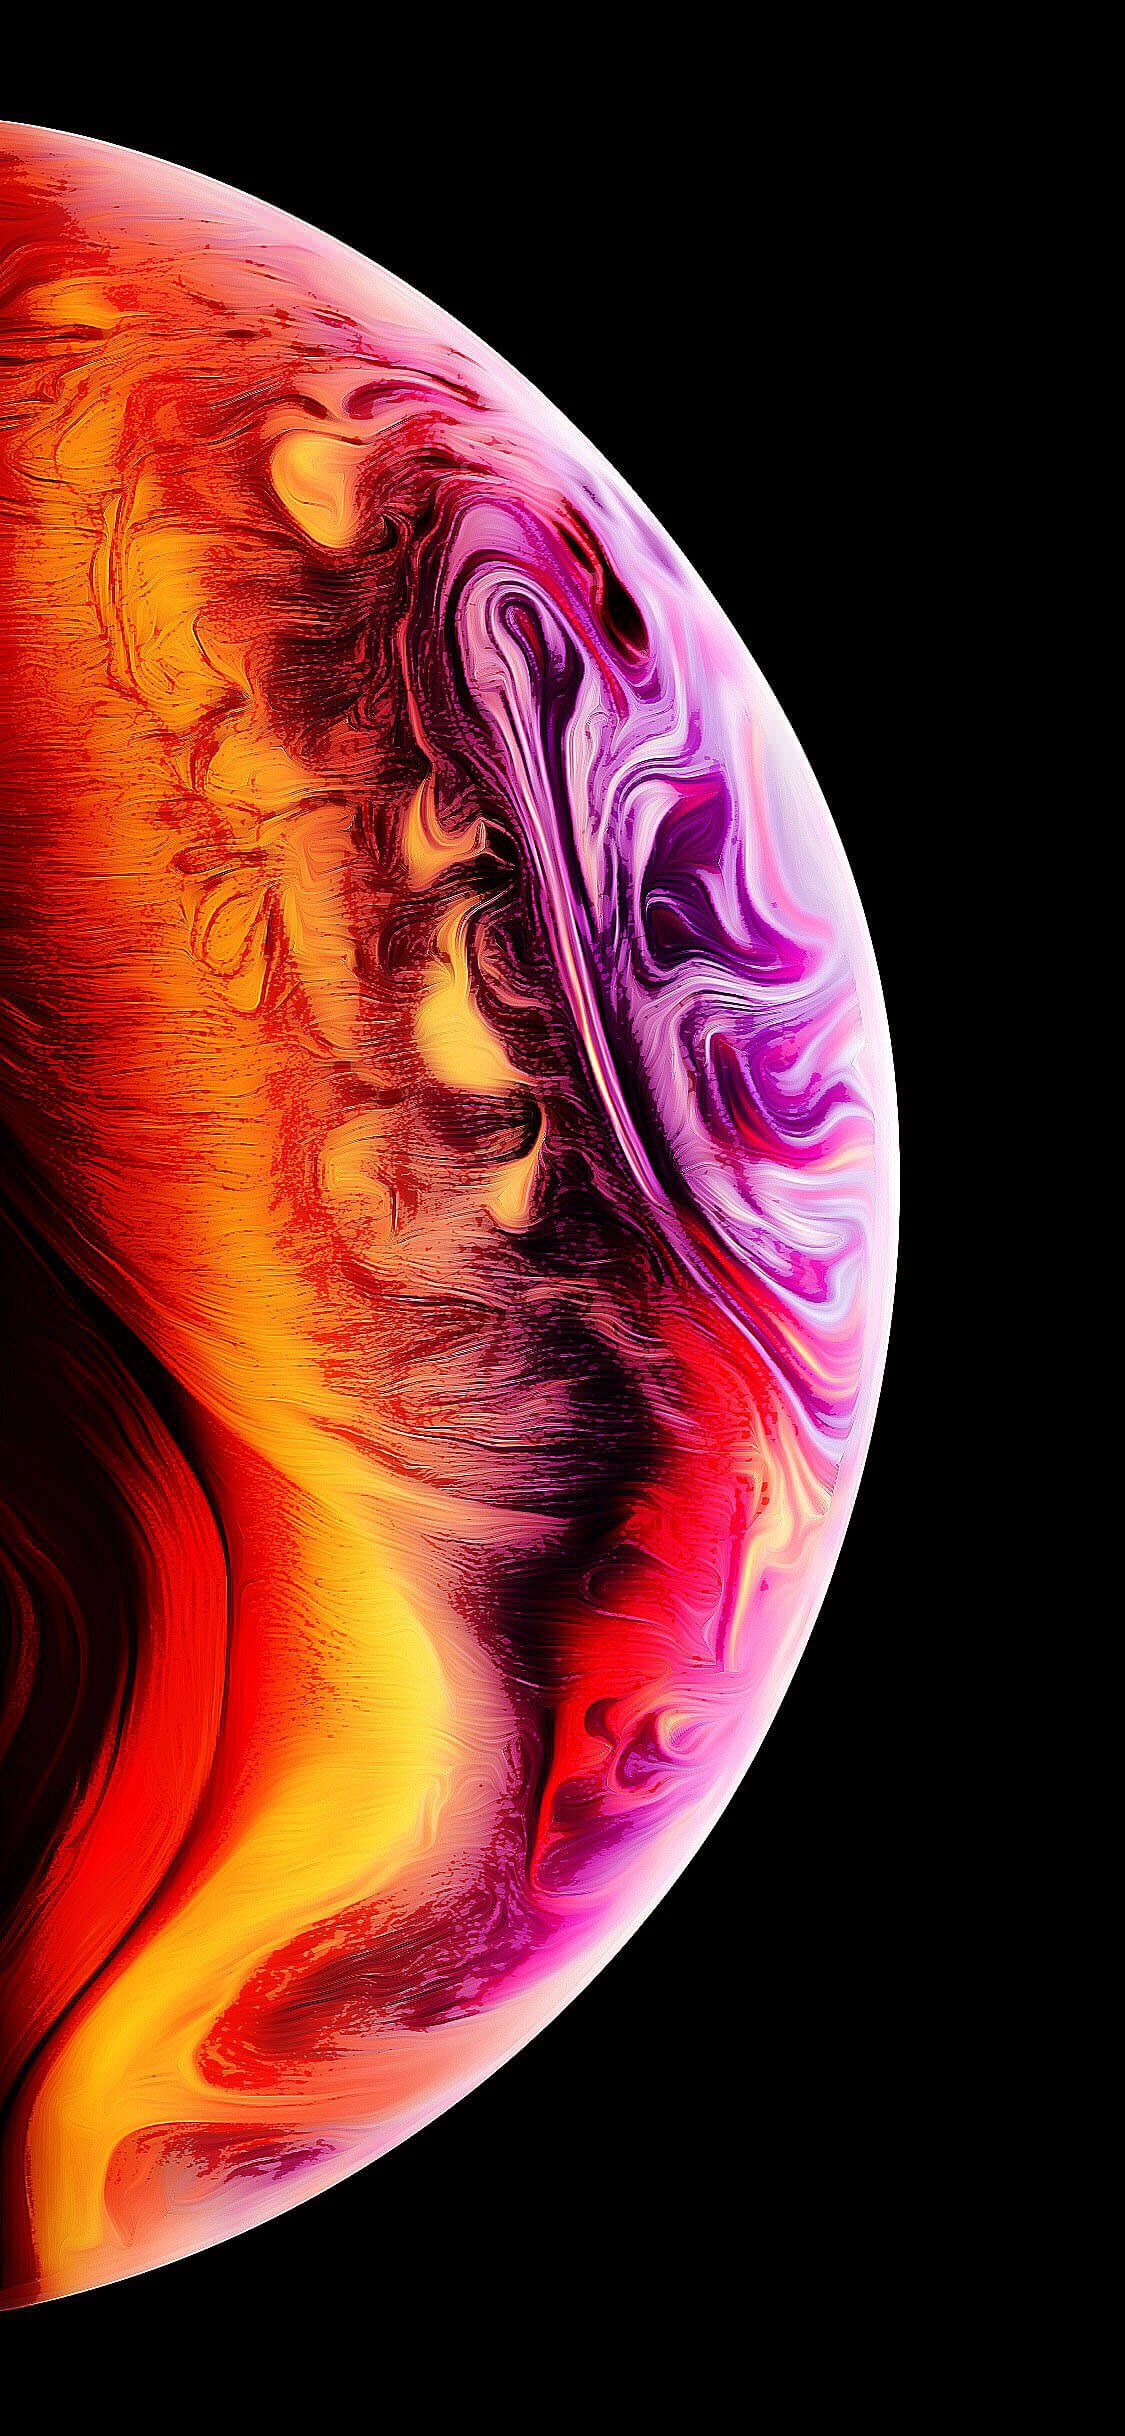 35 Stunning Iphone Xs Wallpapers Backgrounds In Hd